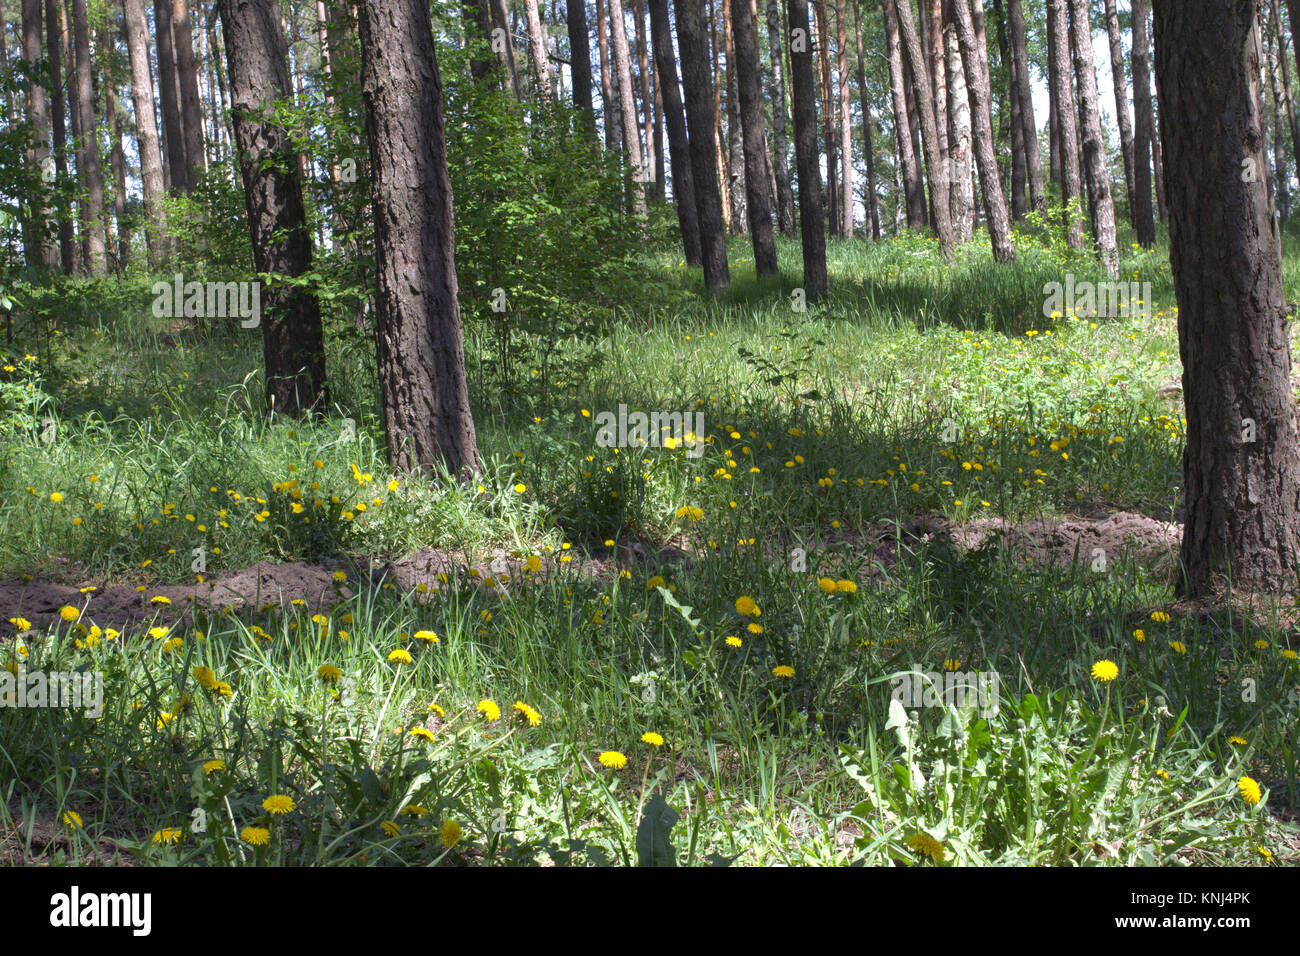 yellow flowers of young dandelions in thickets of sunlit pinery - Stock Image